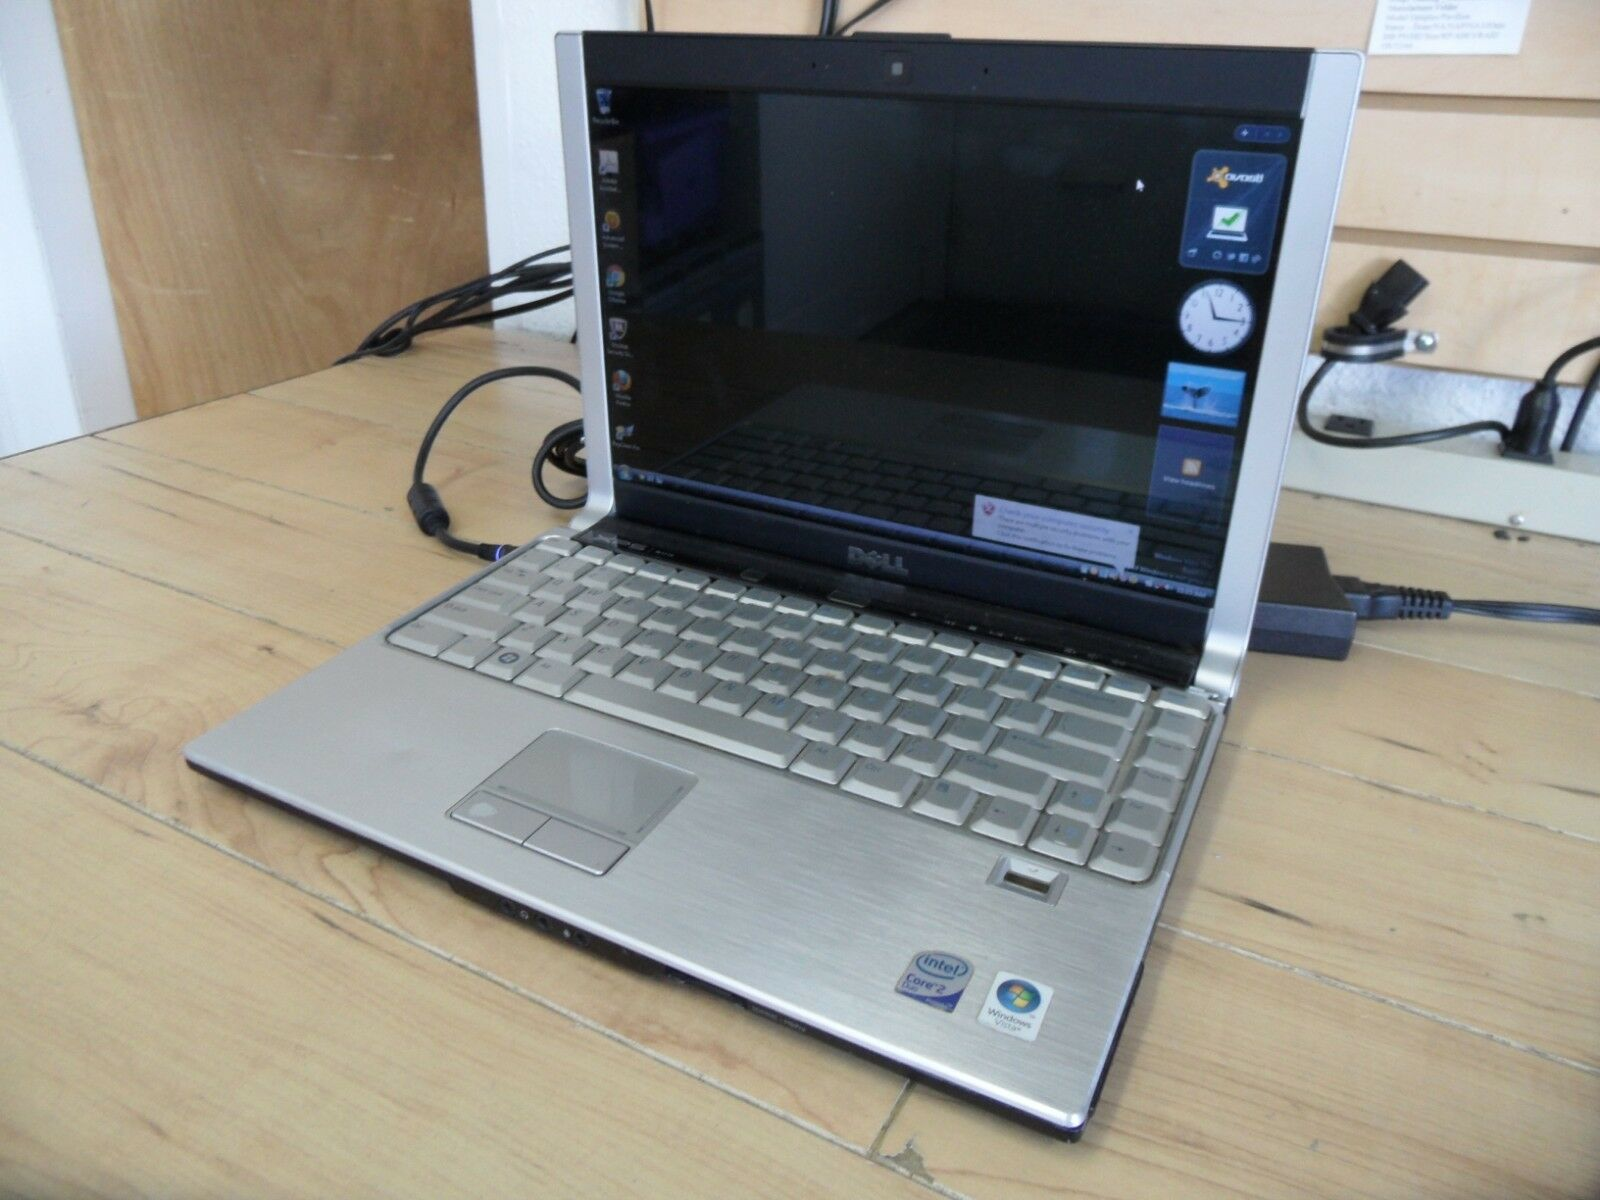 Dell XPS M1330 Laptop For Parts Booted Windows 320 GB Hard Drive Wiped *